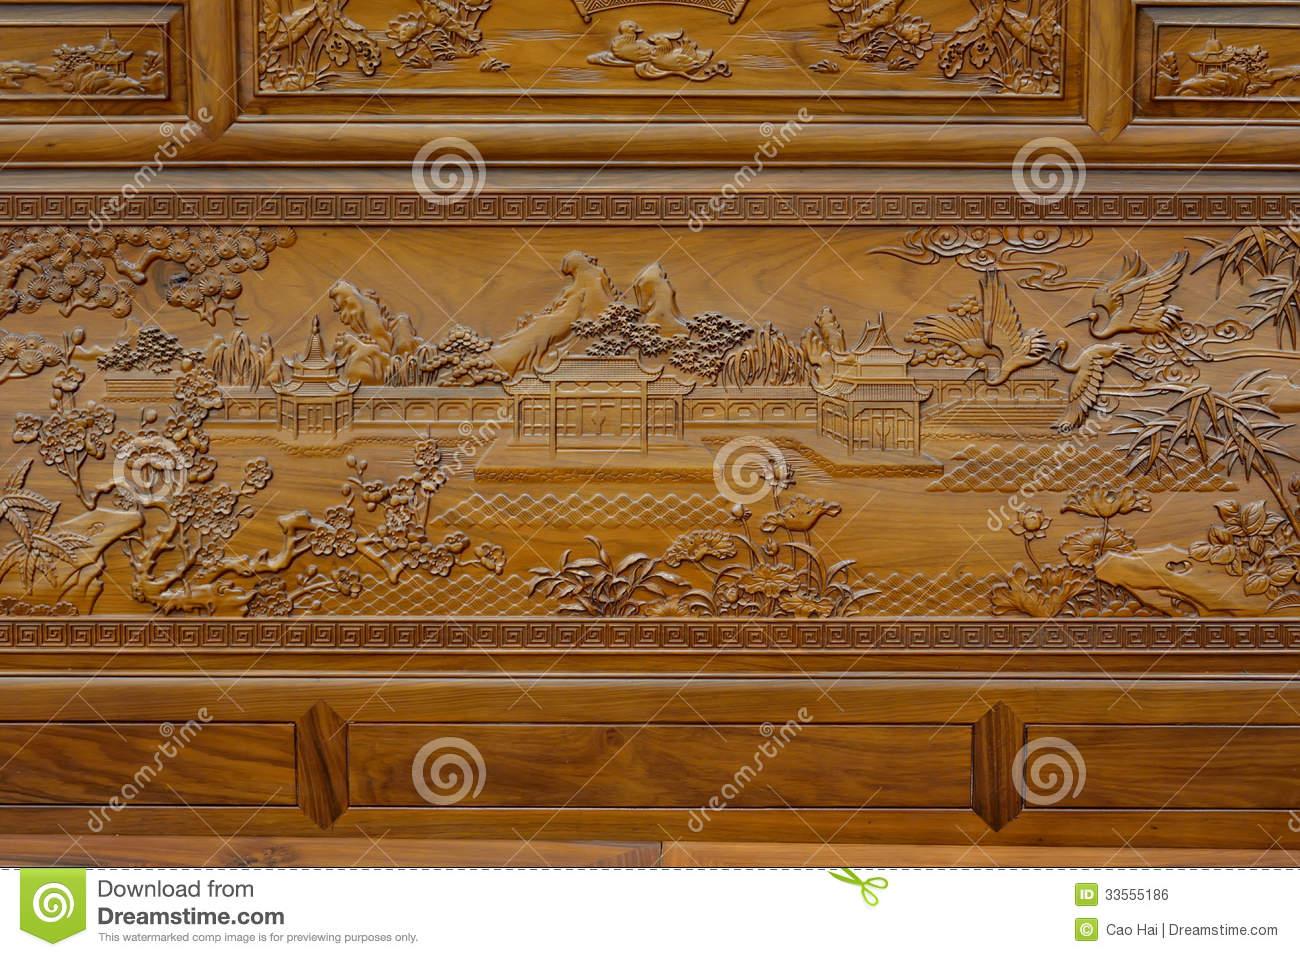 exquisite sculpture on wooden furniture in chinese traditional style furniture in style